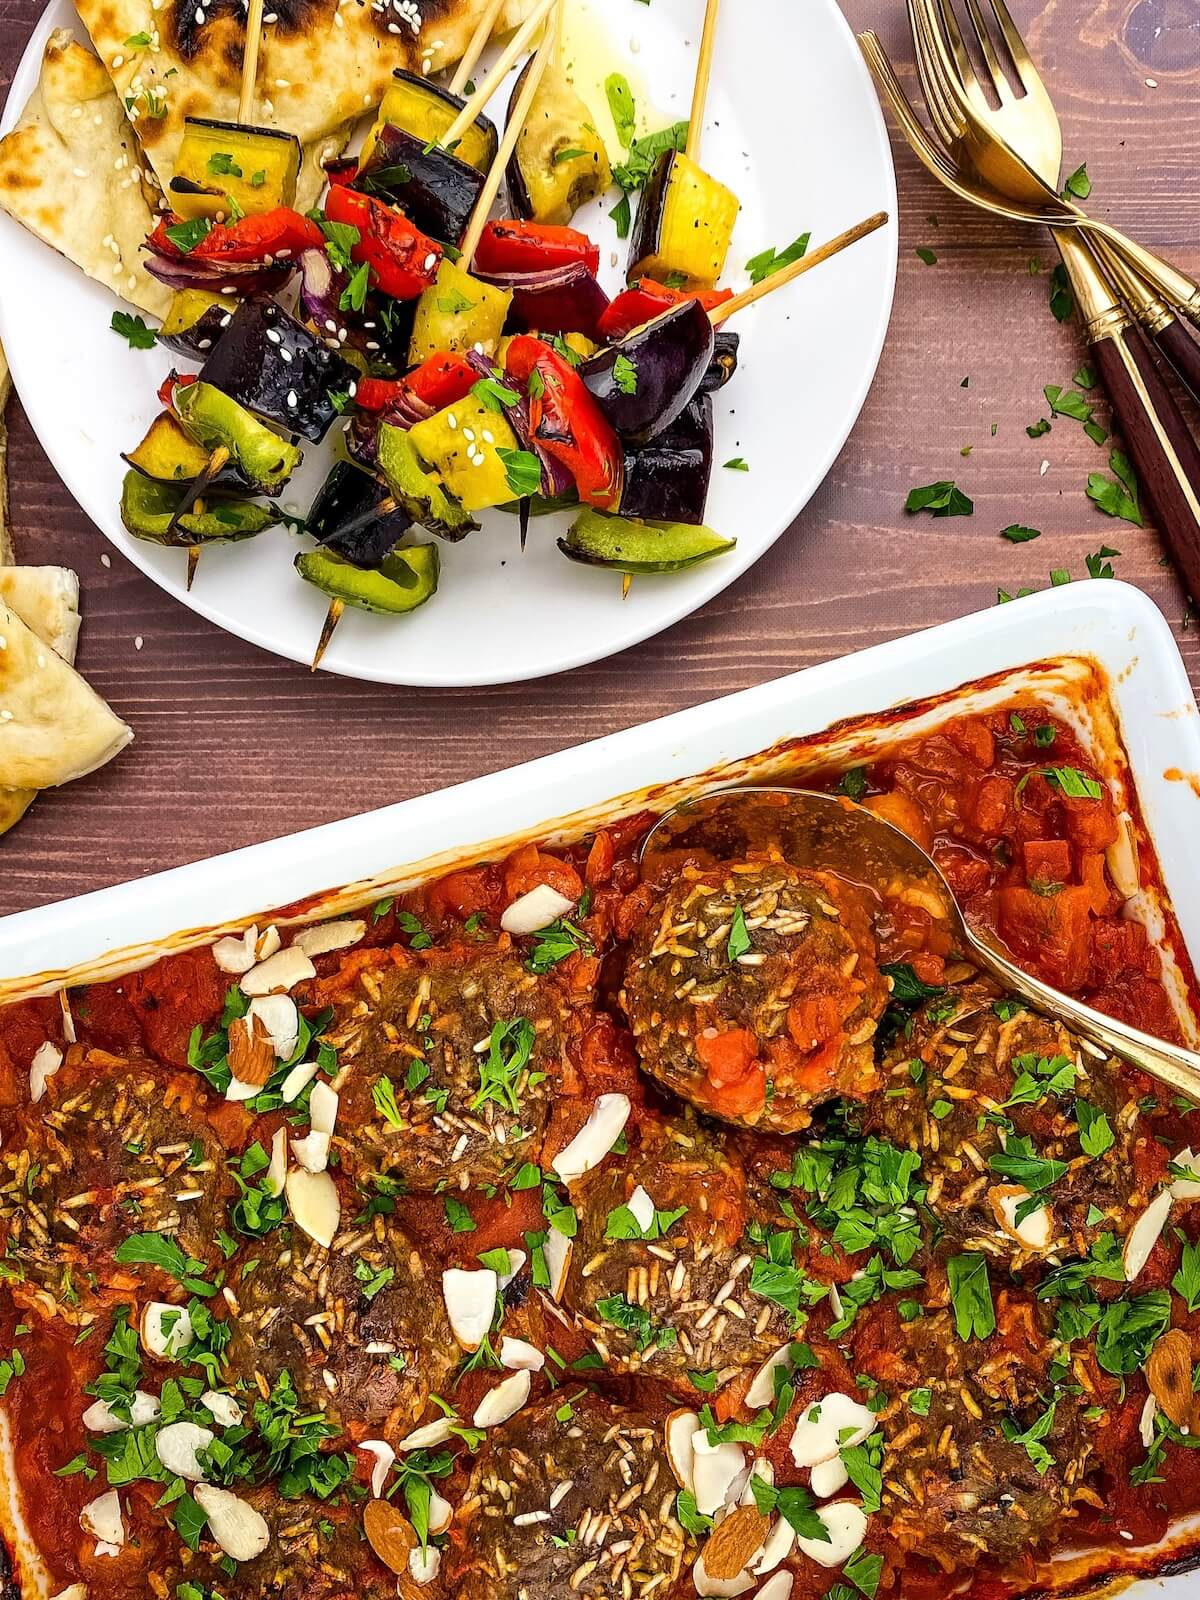 porcupine meatballs in baking dish with vegetable kabobs